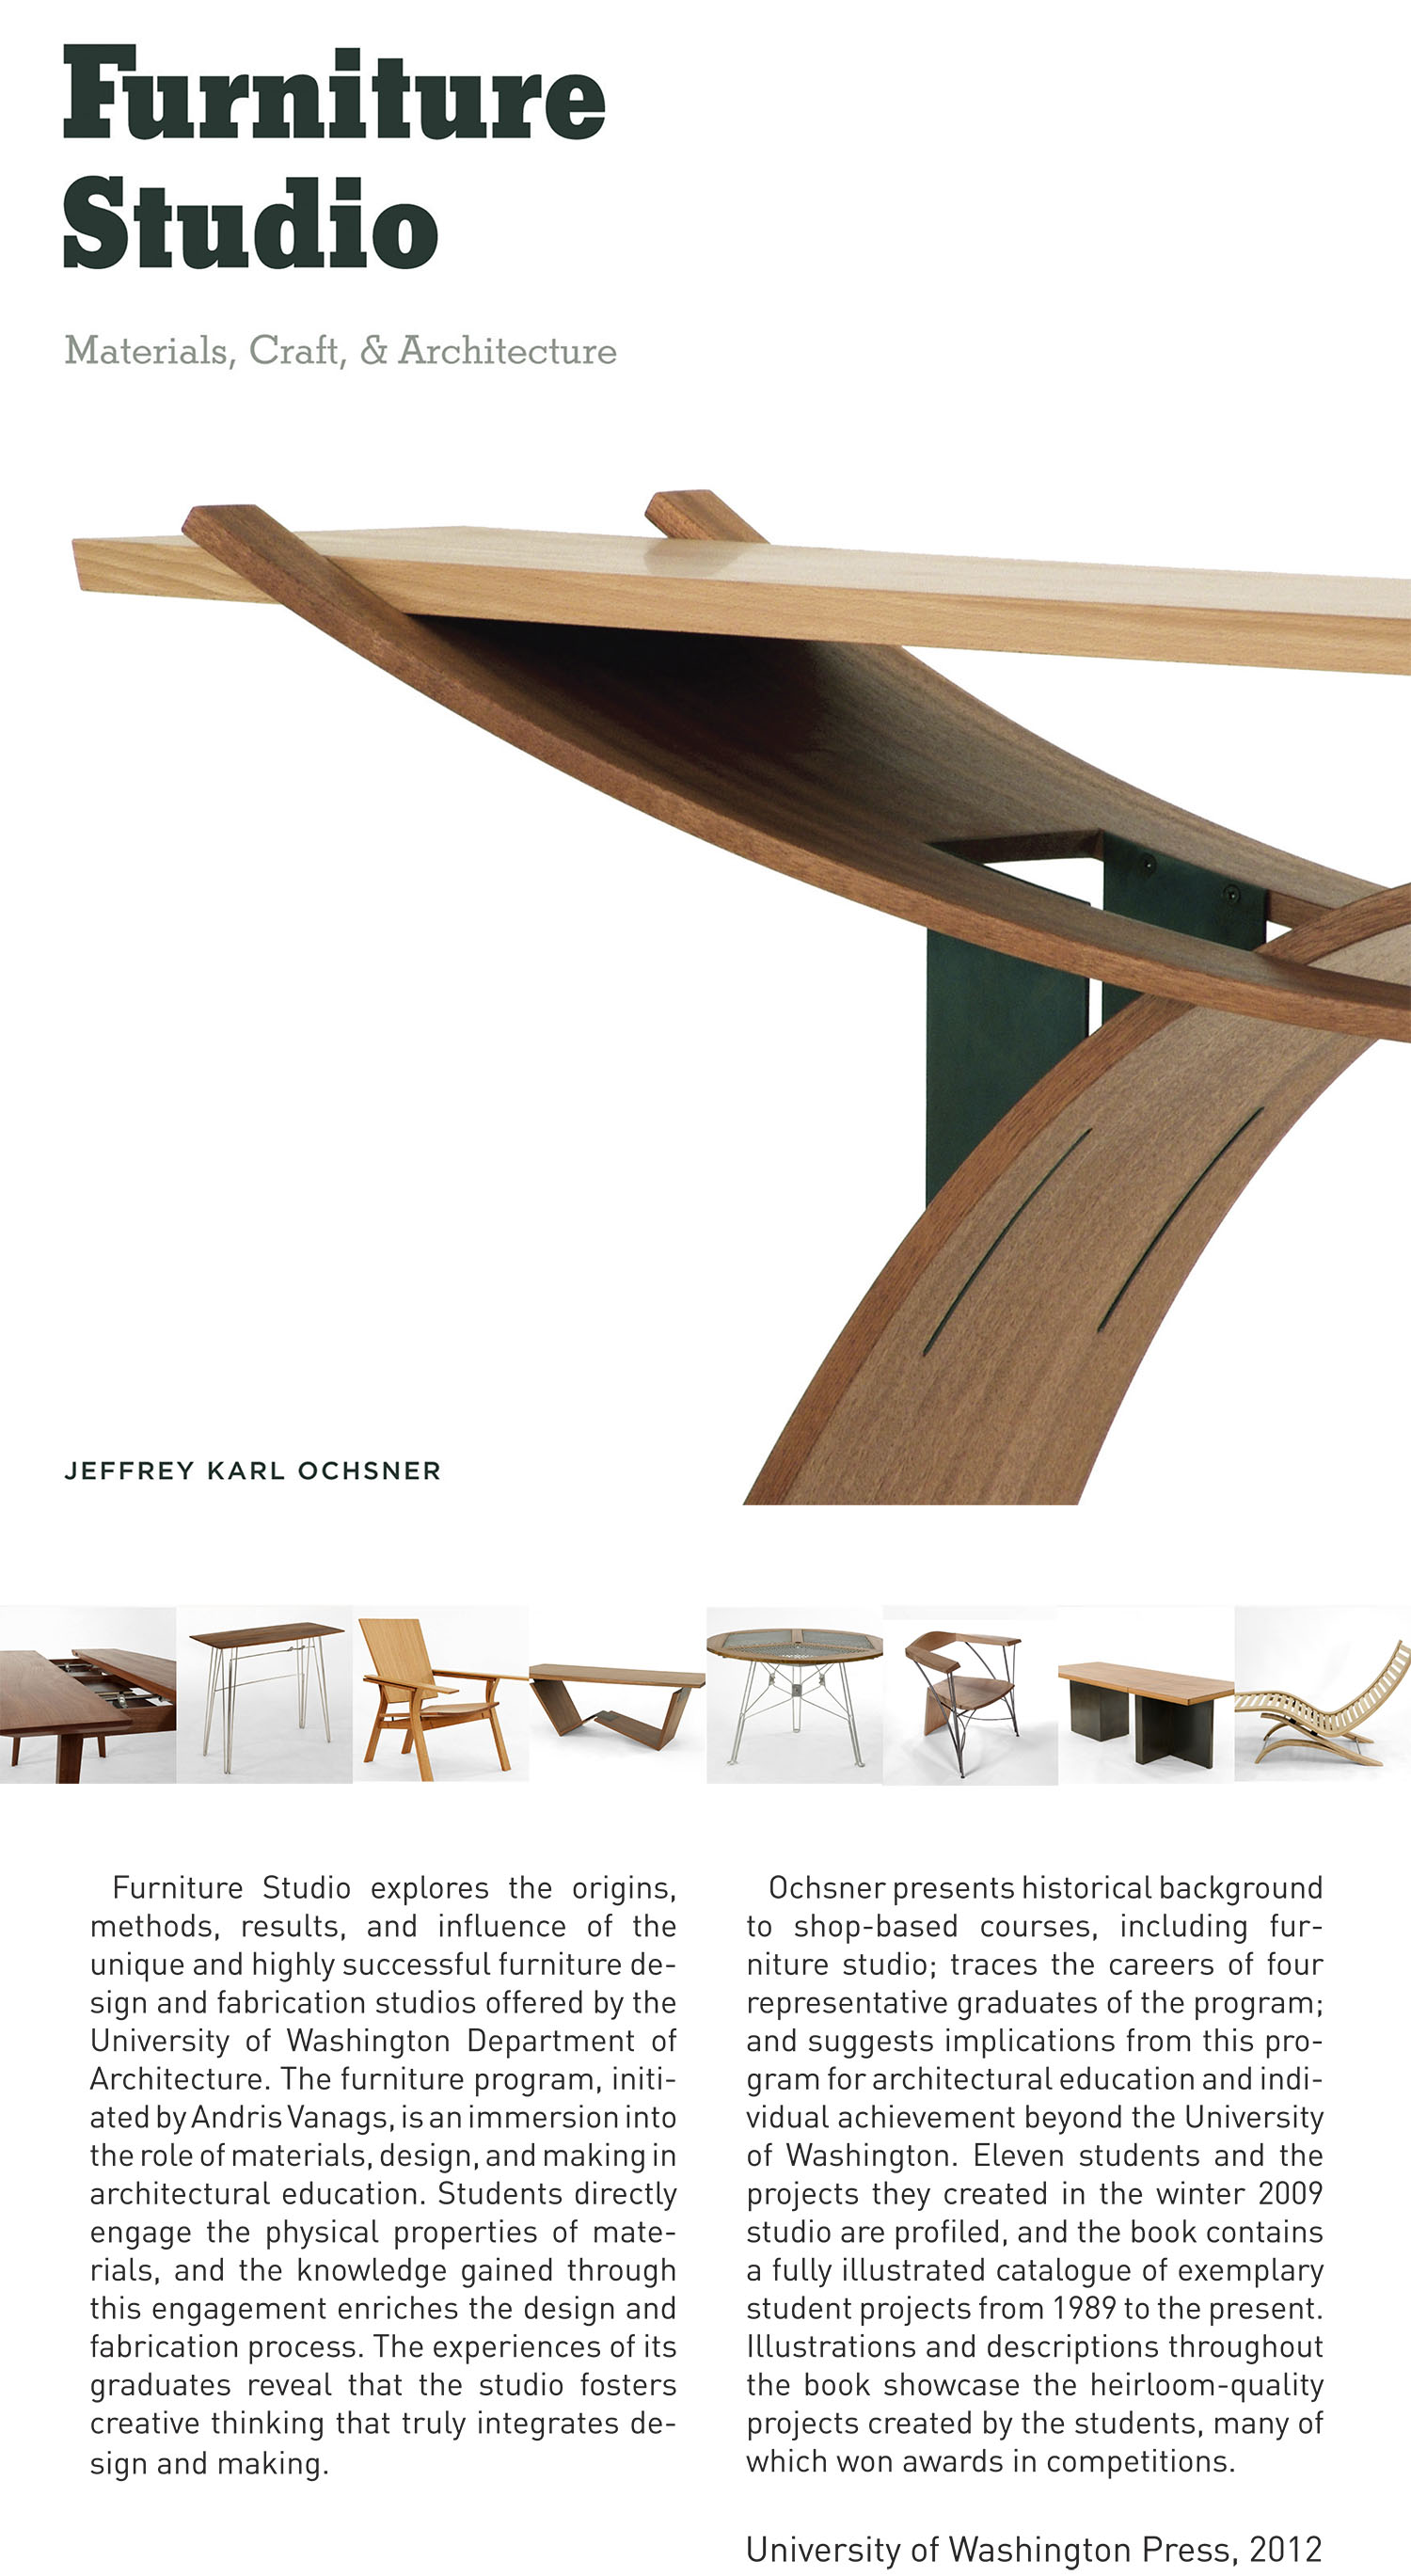 Furniture Studio layout4a-1.jpg